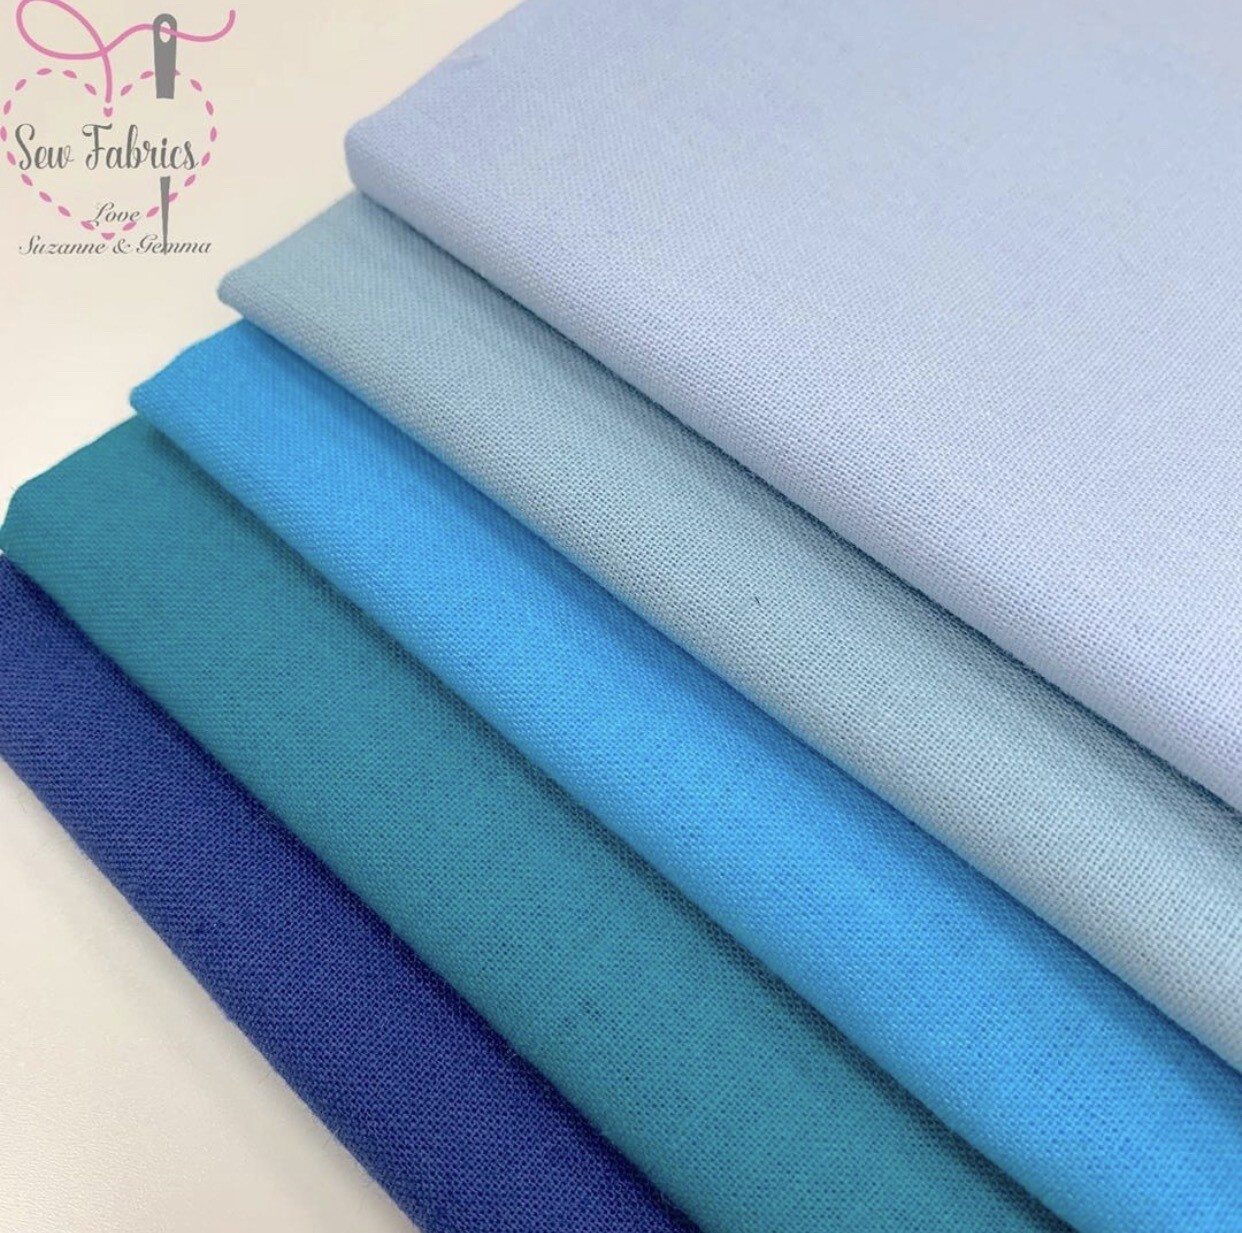 100% Craft Cotton Fabric Solid Blue 5 Piece Fat Quarter Bundle, Duck egg, Pale Blue, Turquoise, Teal, Navy